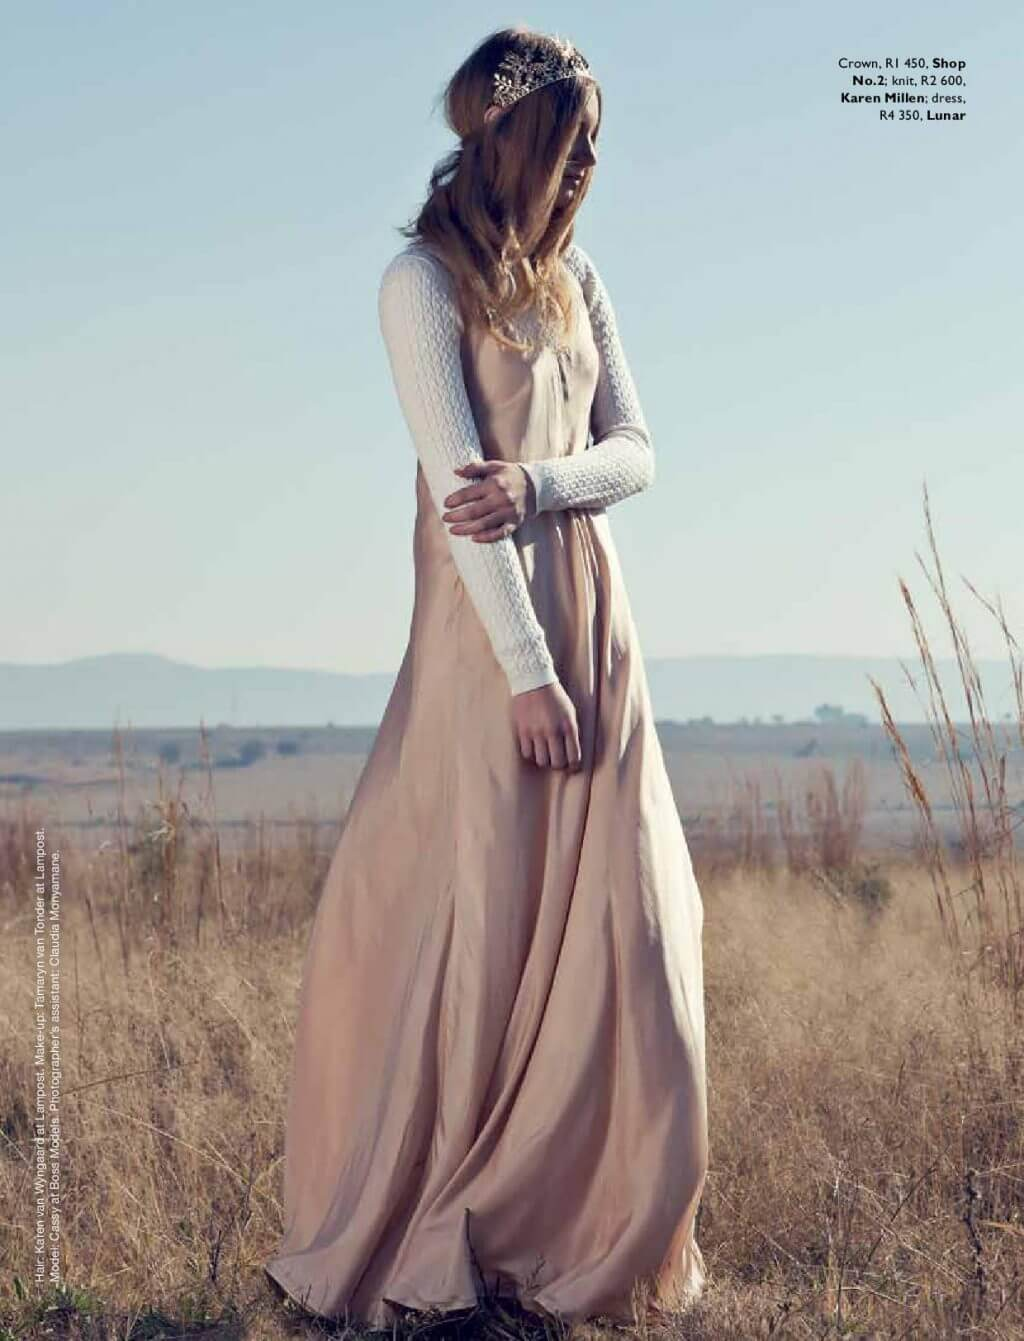 Grazia Magazine Fashion Editorial